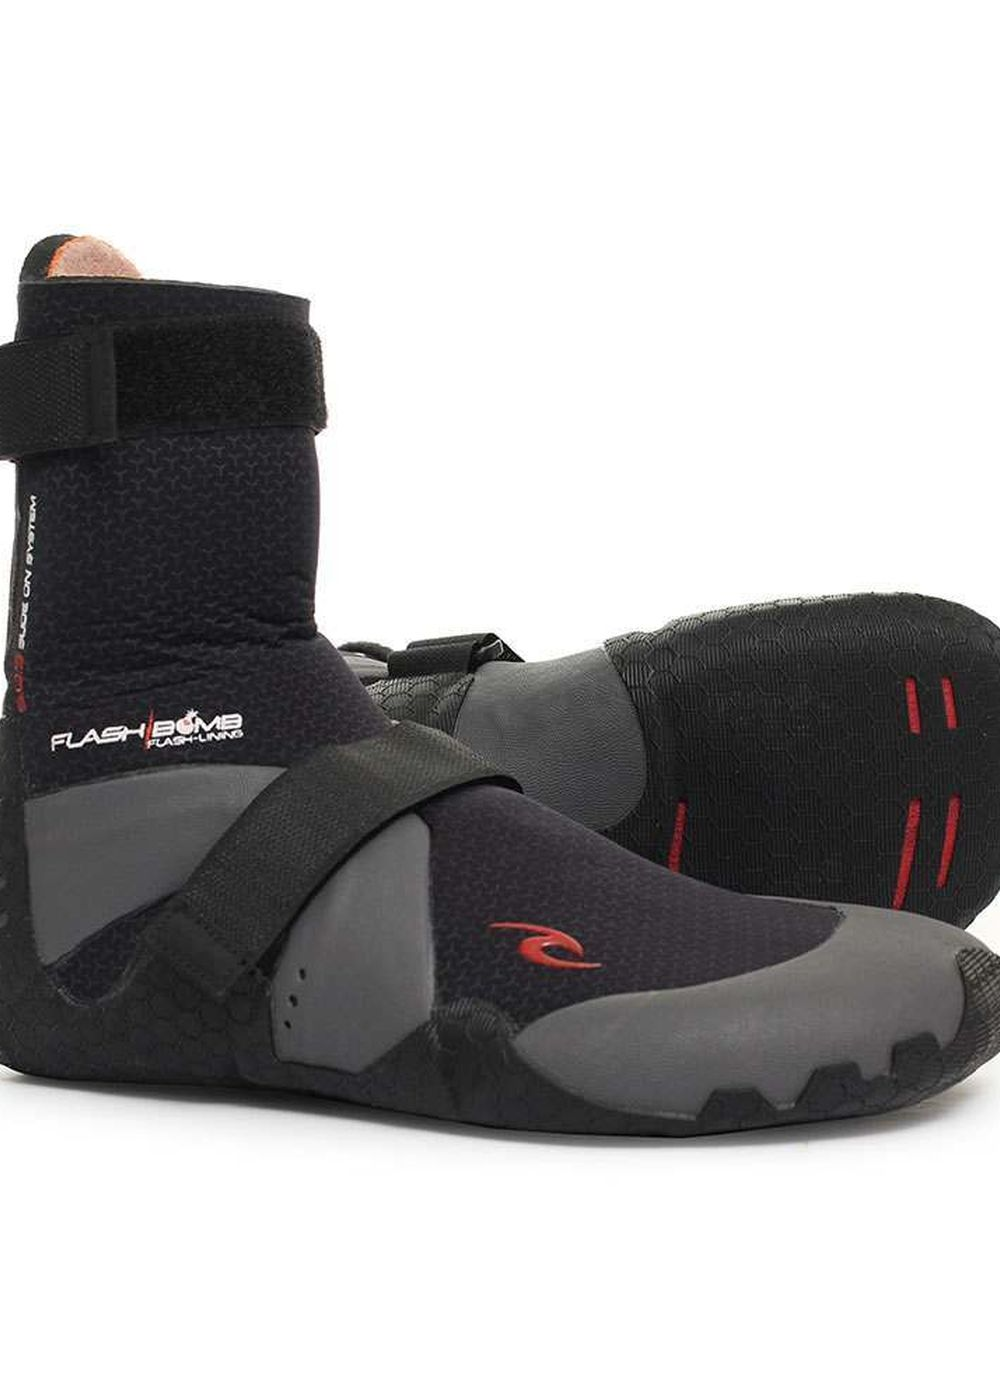 Ripcurl Flashbomb 7mm Rt Wetsuit Boots Picture